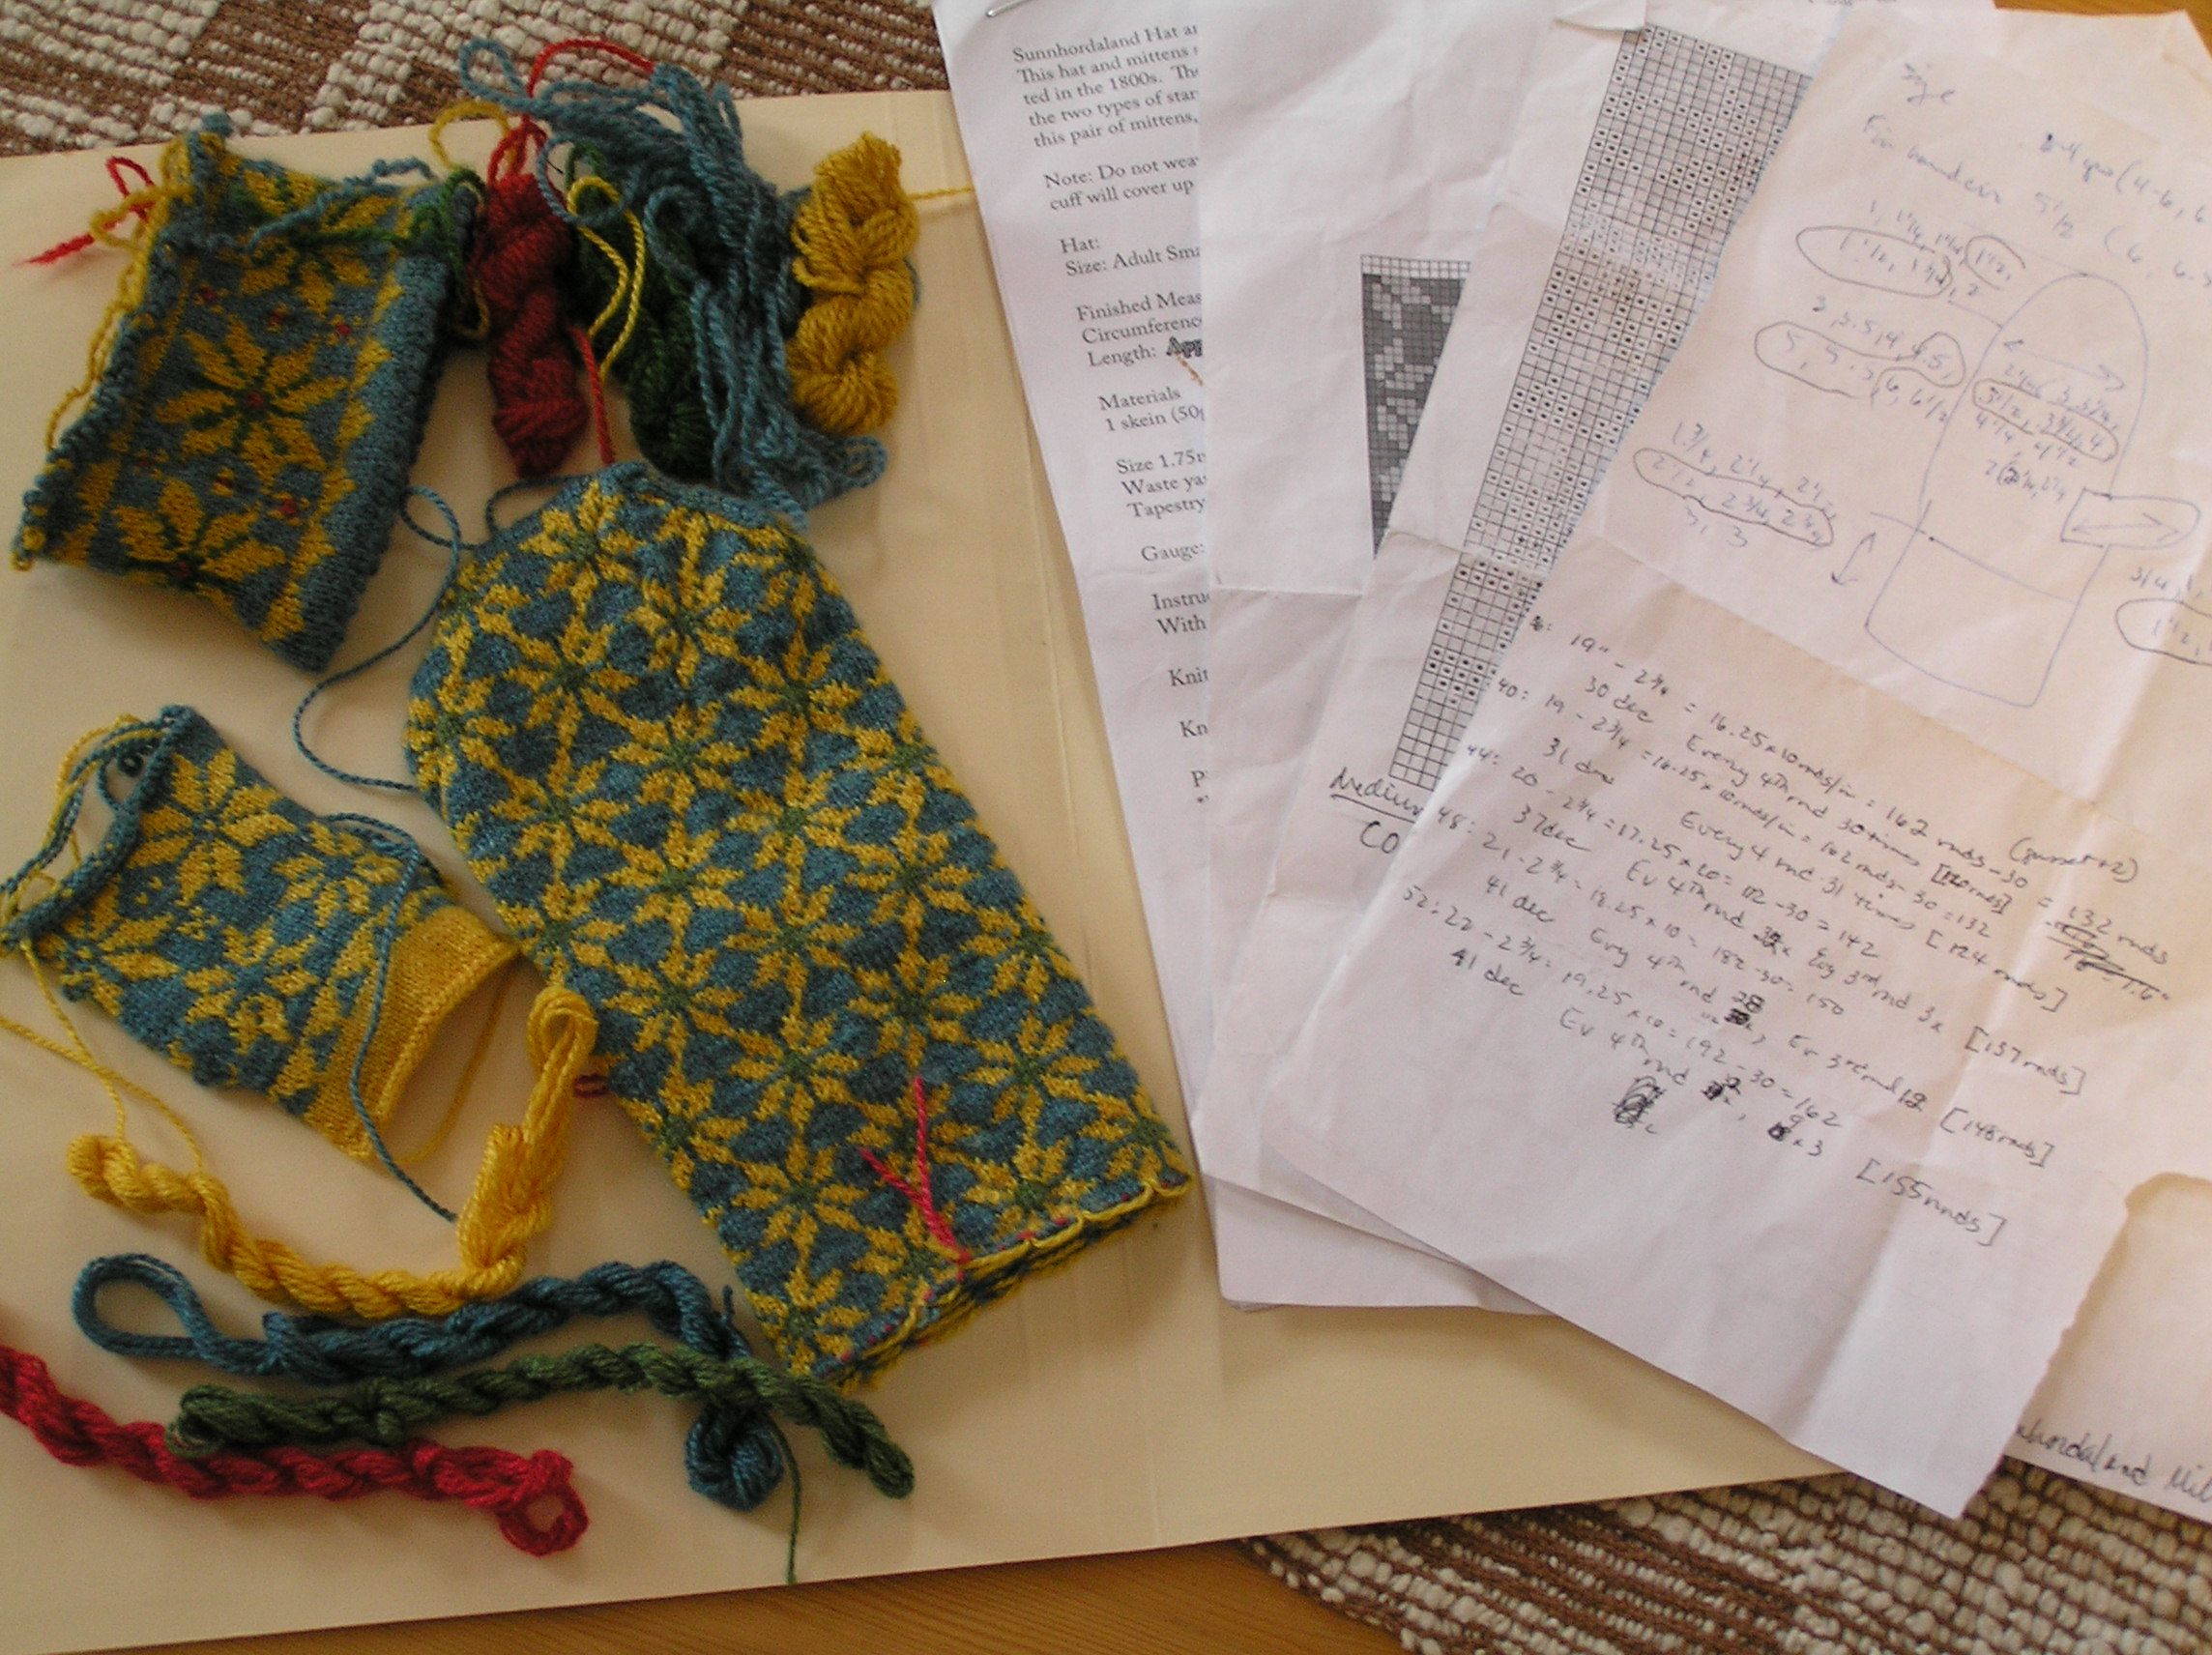 Knitting Project Journal : Happy new year and knitting journals traditions